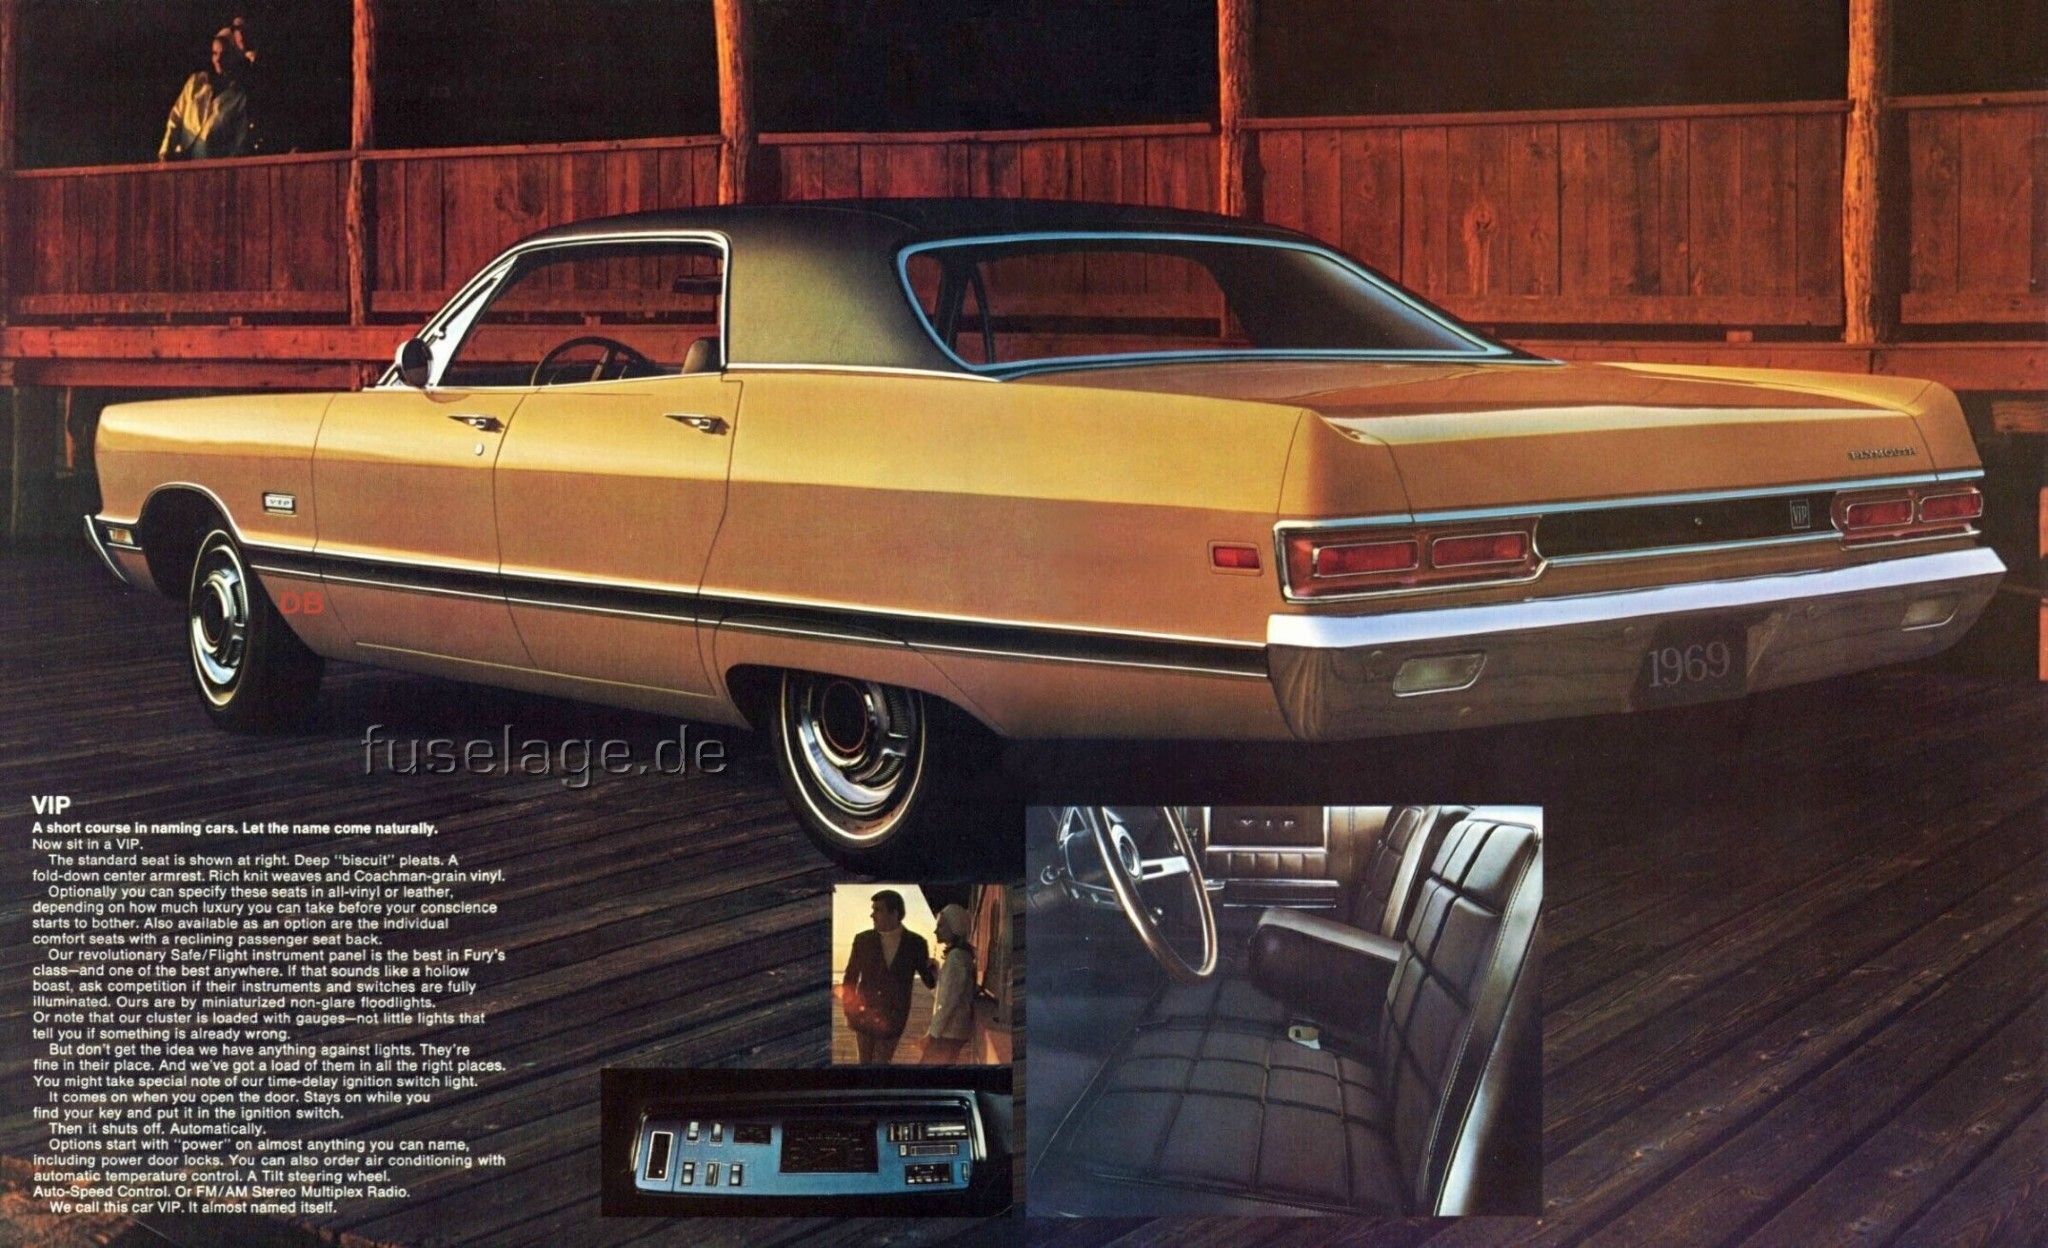 1969 Plymouth Vip 4 Door Hardtop Car Advertising Classic Cars Trucks Old Muscle Cars